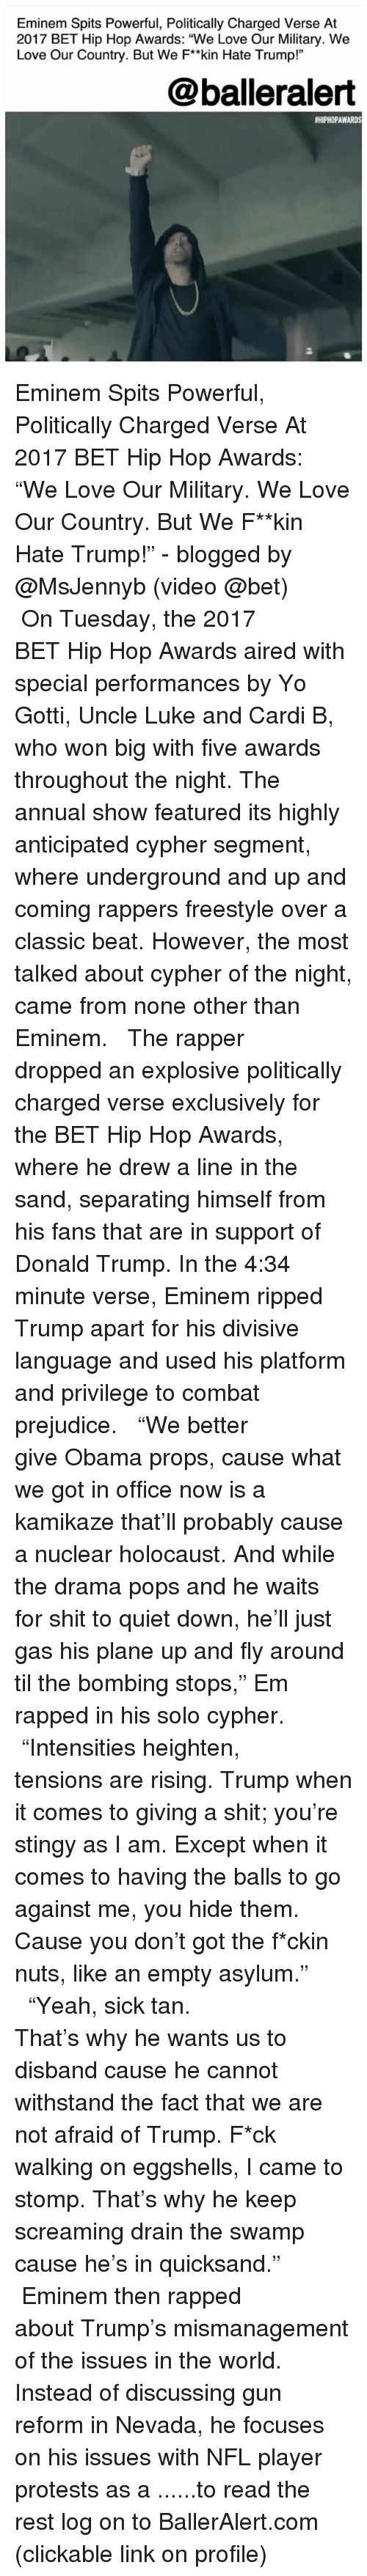 "Hate Trump: Eminem Spits Powerful, Politically Charged Verse At  2017 BET Hip Hop Awards: ""We Love Our Military. We  Love Our Country. But We F*kin Hate Trump!""  @balleralert  #HIPHOPAWARDS  2 Eminem Spits Powerful, Politically Charged Verse At 2017 BET Hip Hop Awards: ""We Love Our Military. We Love Our Country. But We F**kin Hate Trump!"" - blogged by @MsJennyb (video @bet) ⠀⠀⠀⠀⠀⠀⠀ ⠀⠀⠀⠀⠀⠀⠀ On Tuesday, the 2017 BET Hip Hop Awards aired with special performances by Yo Gotti, Uncle Luke and Cardi B, who won big with five awards throughout the night. The annual show featured its highly anticipated cypher segment, where underground and up and coming rappers freestyle over a classic beat. However, the most talked about cypher of the night, came from none other than Eminem. ⠀⠀⠀⠀⠀⠀⠀ ⠀⠀⠀⠀⠀⠀⠀ The rapper dropped an explosive politically charged verse exclusively for the BET Hip Hop Awards, where he drew a line in the sand, separating himself from his fans that are in support of Donald Trump. In the 4:34 minute verse, Eminem ripped Trump apart for his divisive language and used his platform and privilege to combat prejudice. ⠀⠀⠀⠀⠀⠀⠀ ⠀⠀⠀⠀⠀⠀⠀ ""We better give Obama props, cause what we got in office now is a kamikaze that'll probably cause a nuclear holocaust. And while the drama pops and he waits for shit to quiet down, he'll just gas his plane up and fly around til the bombing stops,"" Em rapped in his solo cypher. ⠀⠀⠀⠀⠀⠀⠀ ⠀⠀⠀⠀⠀⠀⠀ ""Intensities heighten, tensions are rising. Trump when it comes to giving a shit; you're stingy as I am. Except when it comes to having the balls to go against me, you hide them. Cause you don't got the f*ckin nuts, like an empty asylum."" ⠀⠀⠀⠀⠀⠀⠀ ⠀⠀⠀⠀⠀⠀⠀ ""Yeah, sick tan. That's why he wants us to disband cause he cannot withstand the fact that we are not afraid of Trump. F*ck walking on eggshells, I came to stomp. That's why he keep screaming drain the swamp cause he's in quicksand."" ⠀⠀⠀⠀⠀⠀⠀ ⠀⠀⠀⠀⠀⠀⠀ Eminem then rapped about Trump's mismanagement of the issues in the world. Instead of discussing gun reform in Nevada, he focuses on his issues with NFL player protests as a ......to read the rest log on to BallerAlert.com (clickable link on profile)"